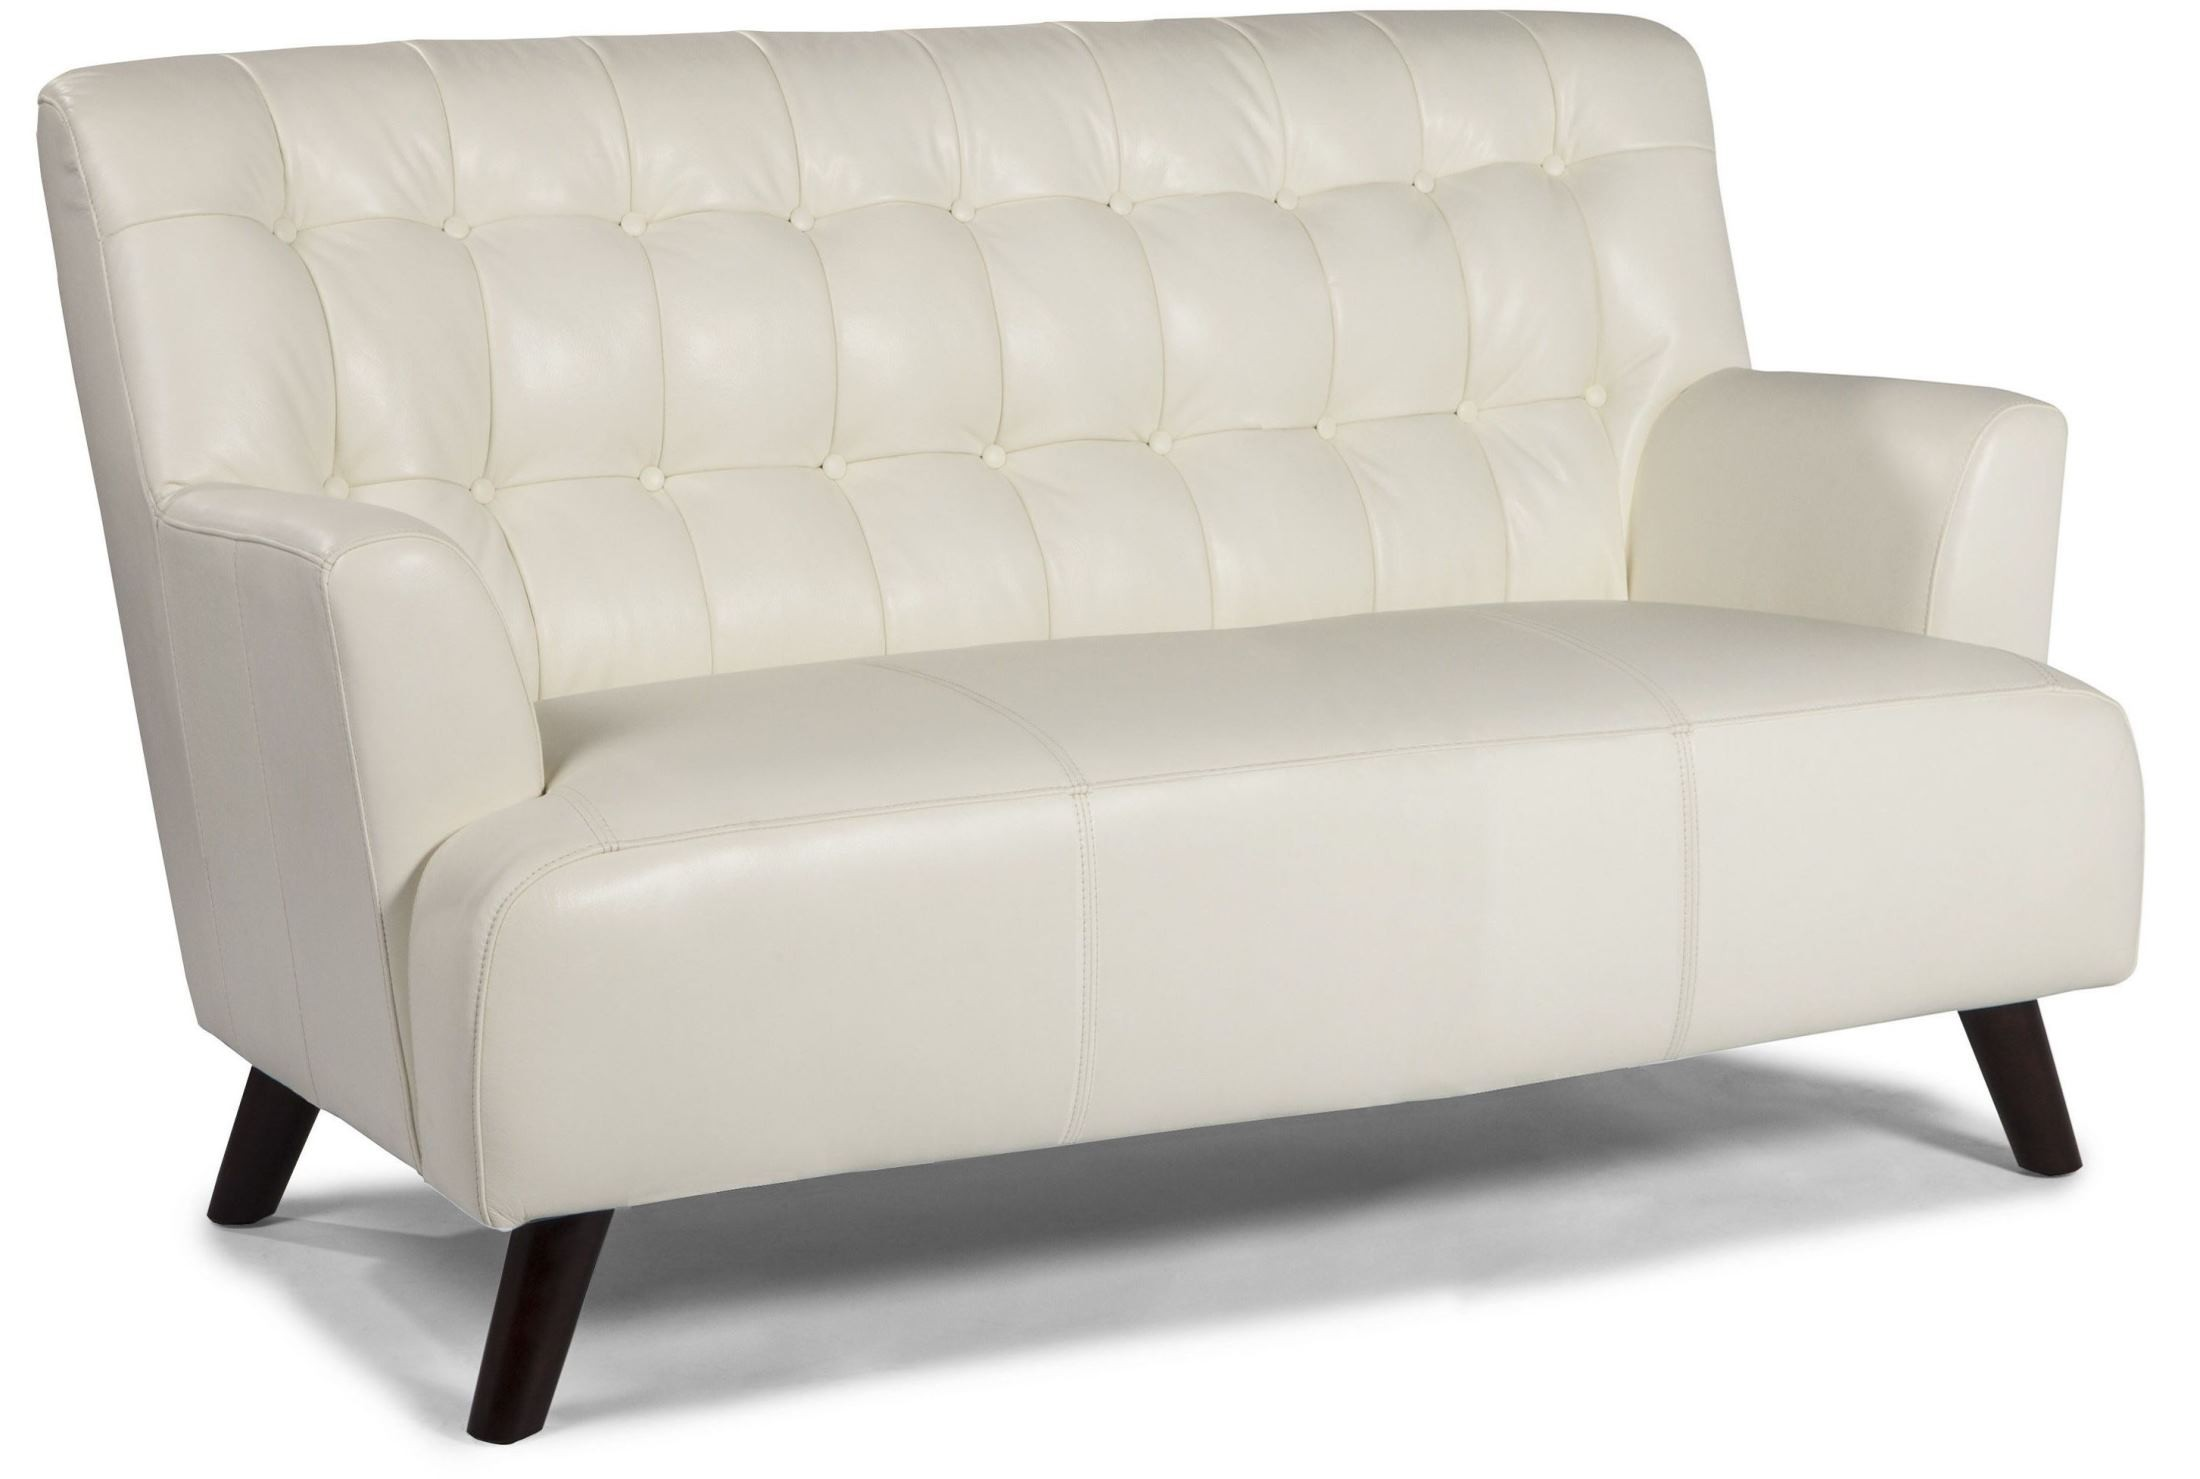 New York White Leather Loveseat From Lazzaro Coleman Furniture